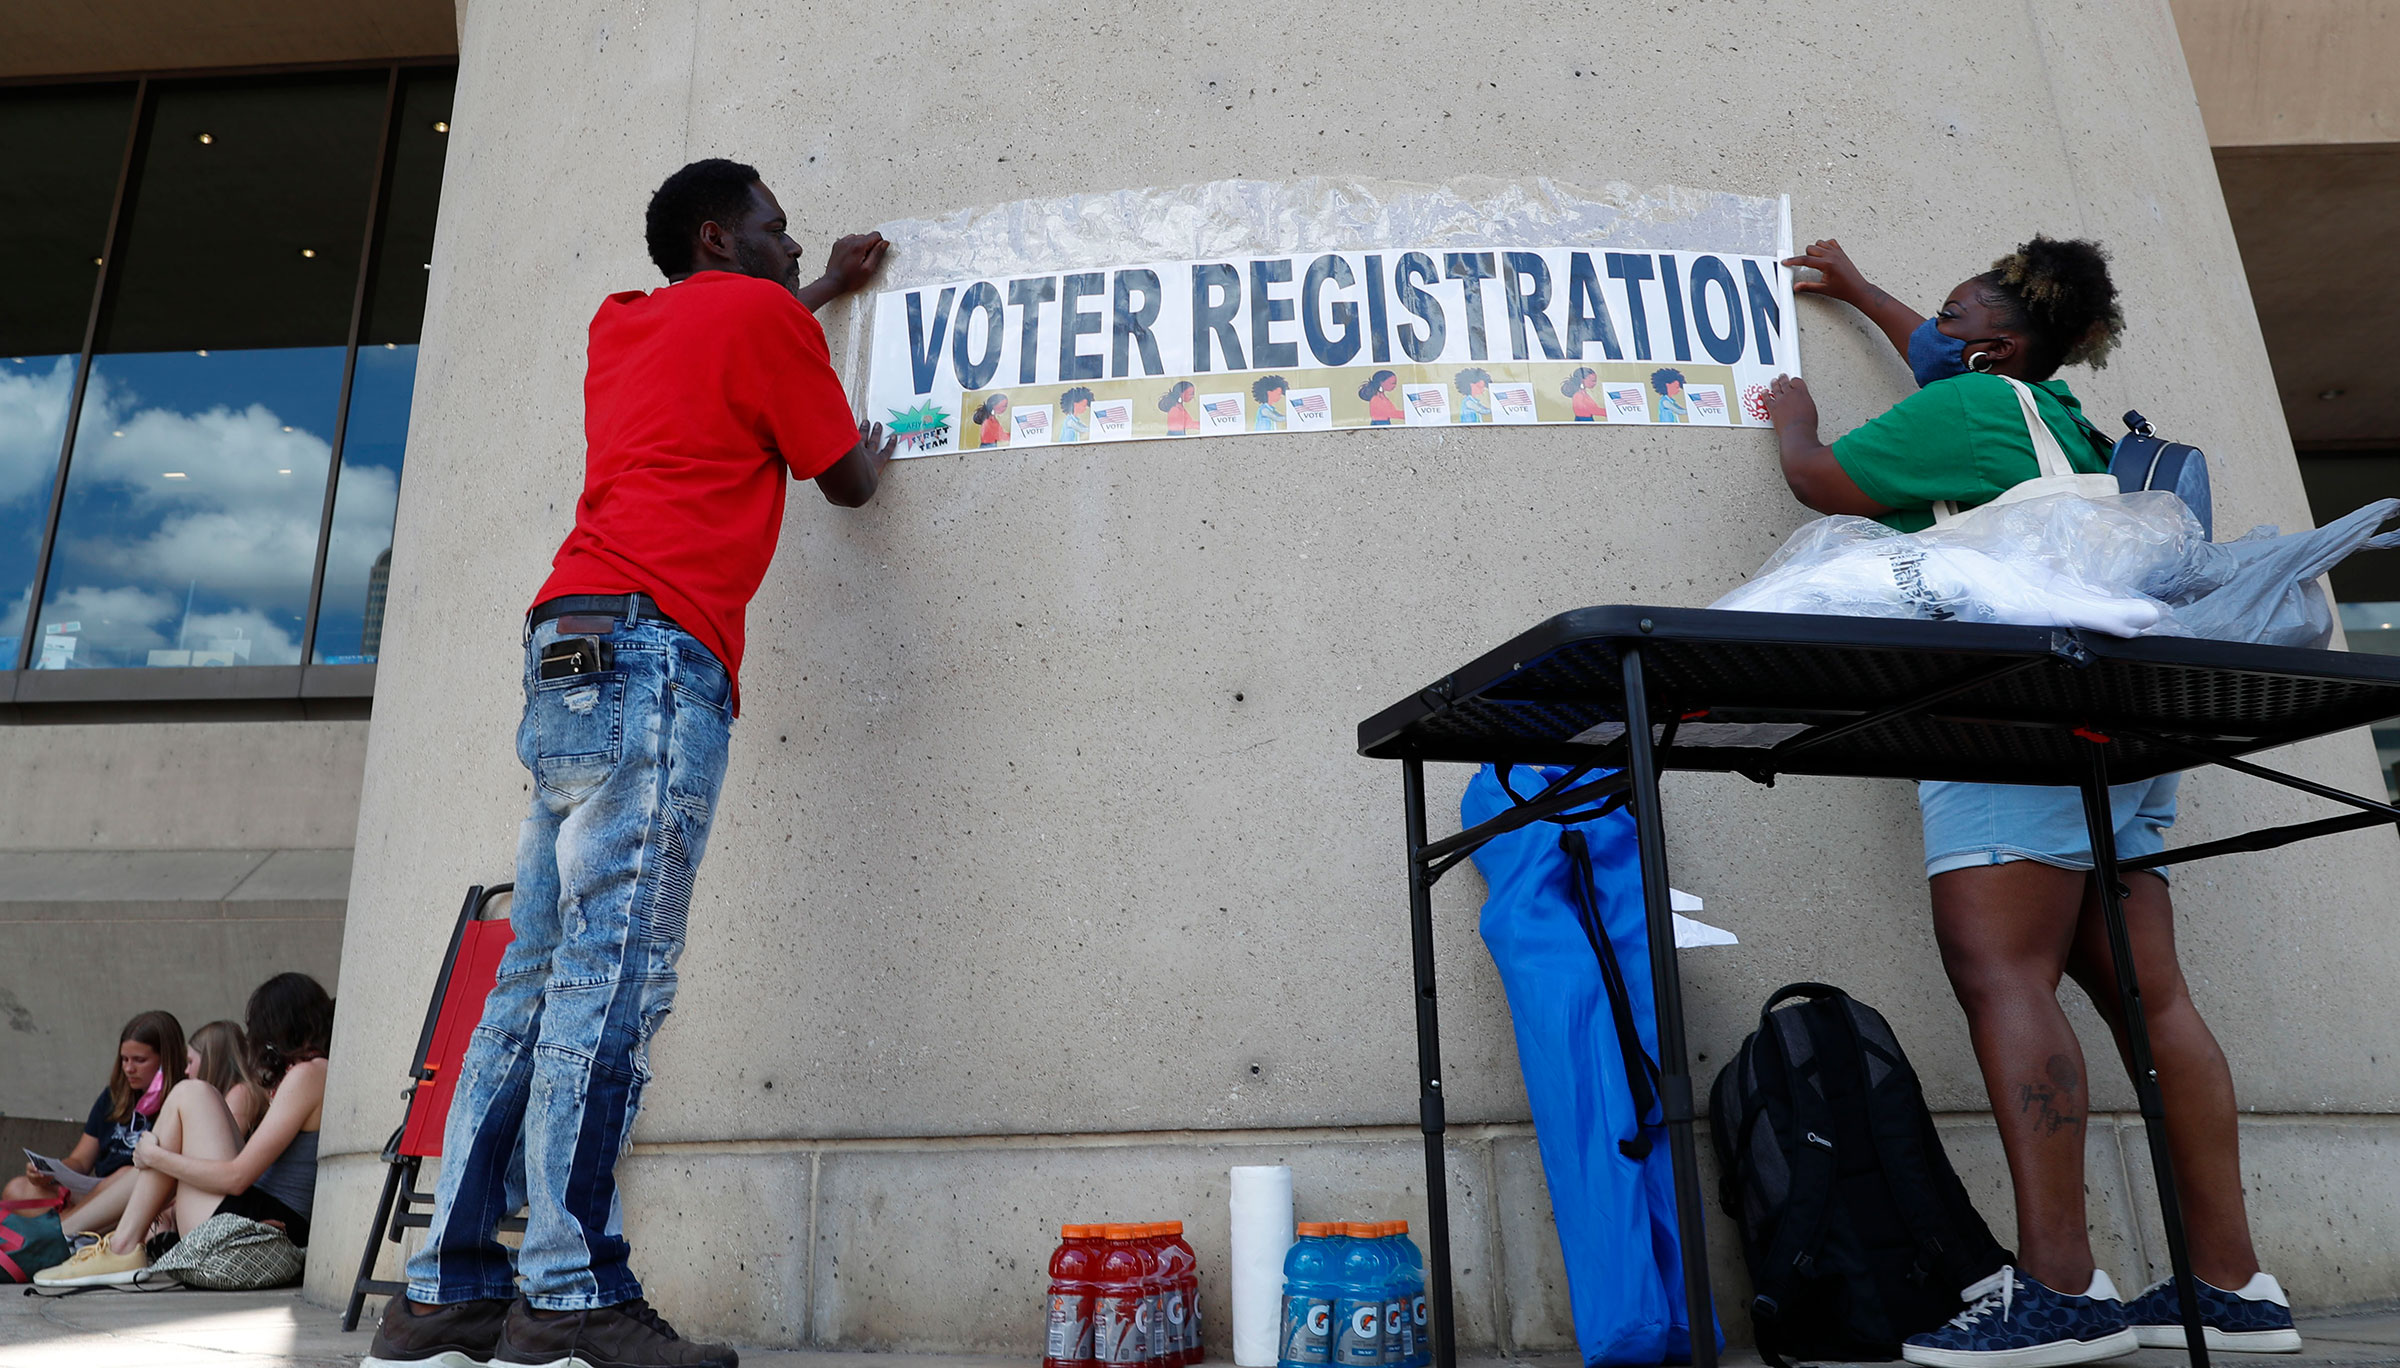 The new registration numbers of voters suggest momentum for Democrats